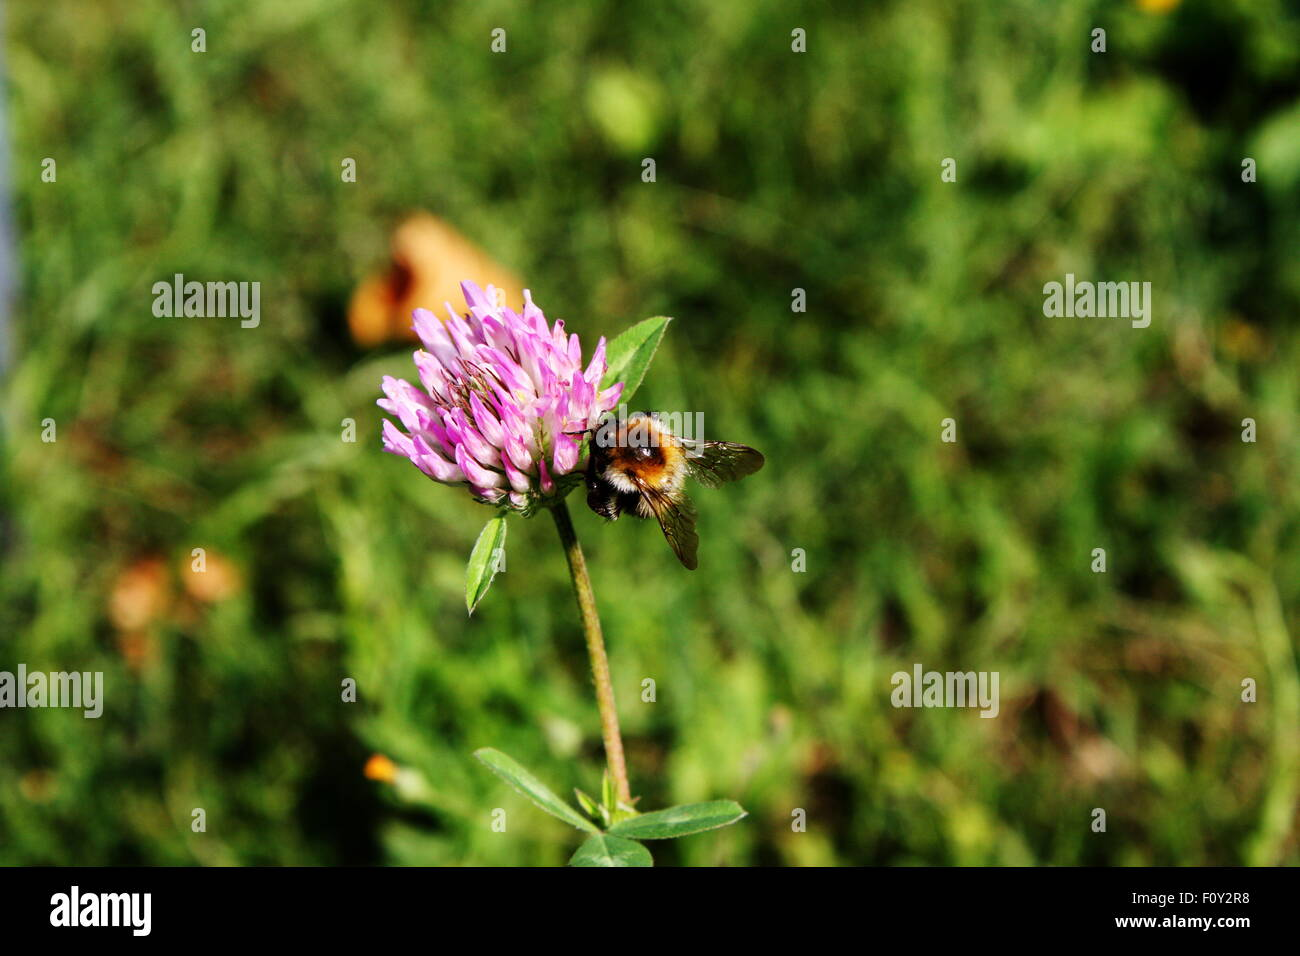 a bee on flower - Stock Image